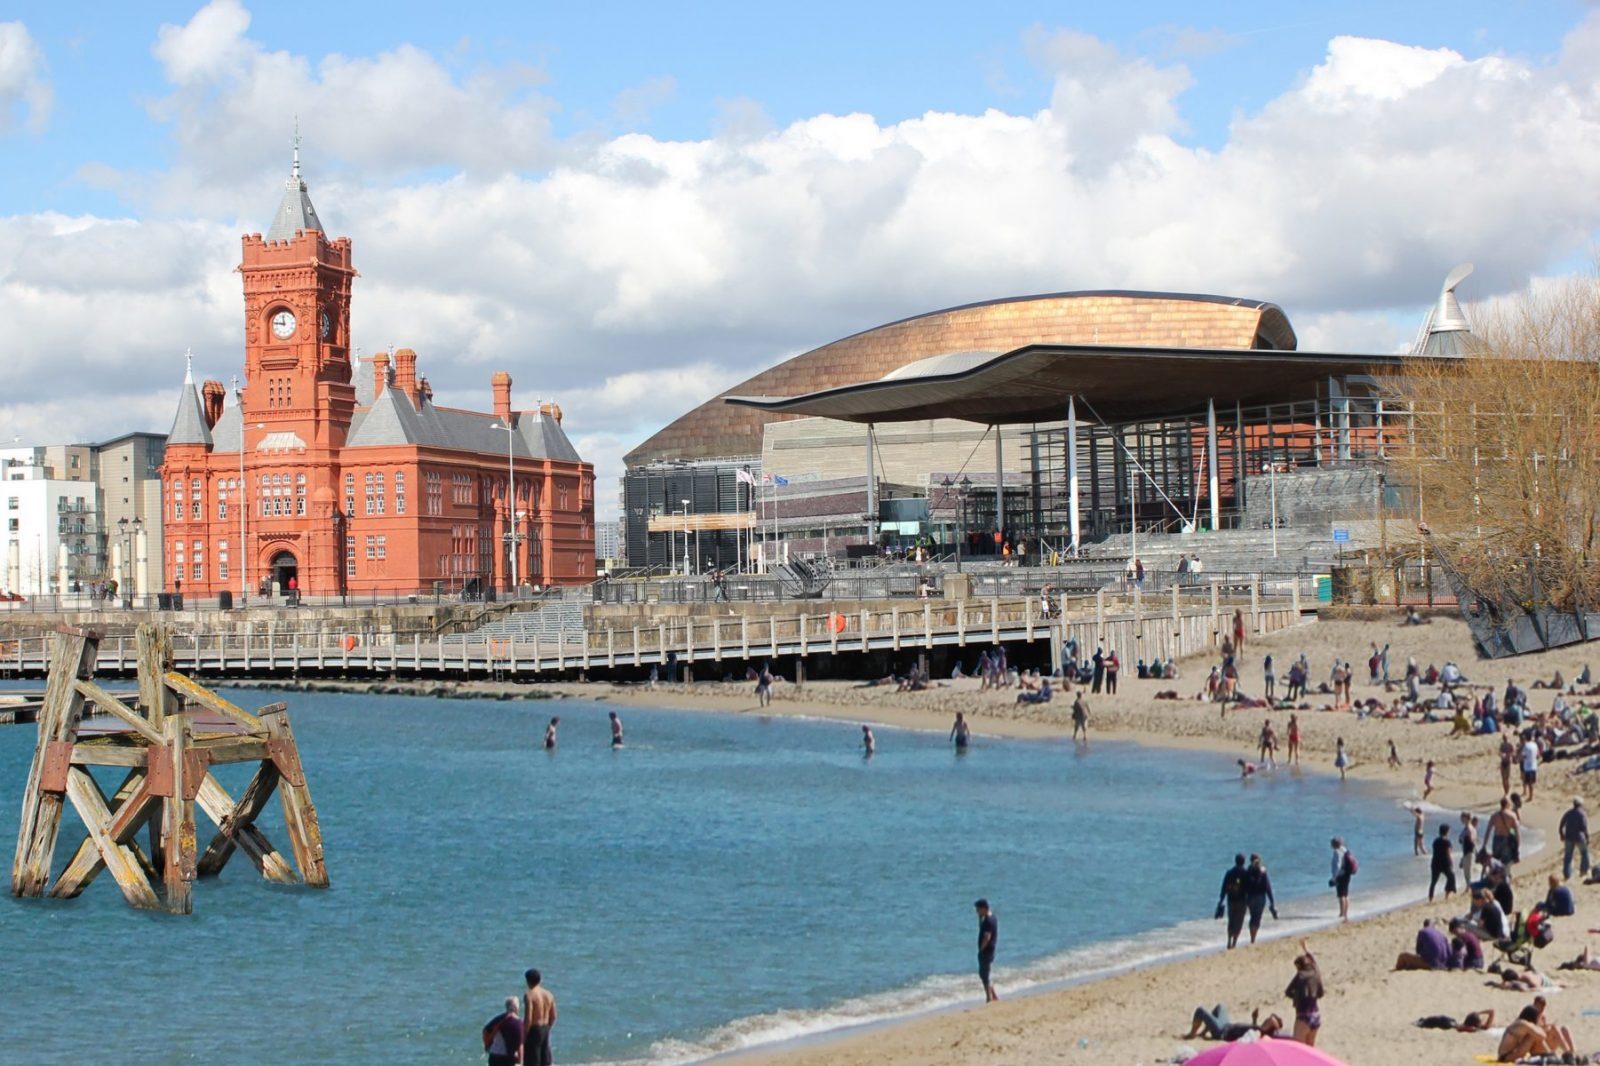 cardiff bay beach outdoor lido cardiff architects jersey1